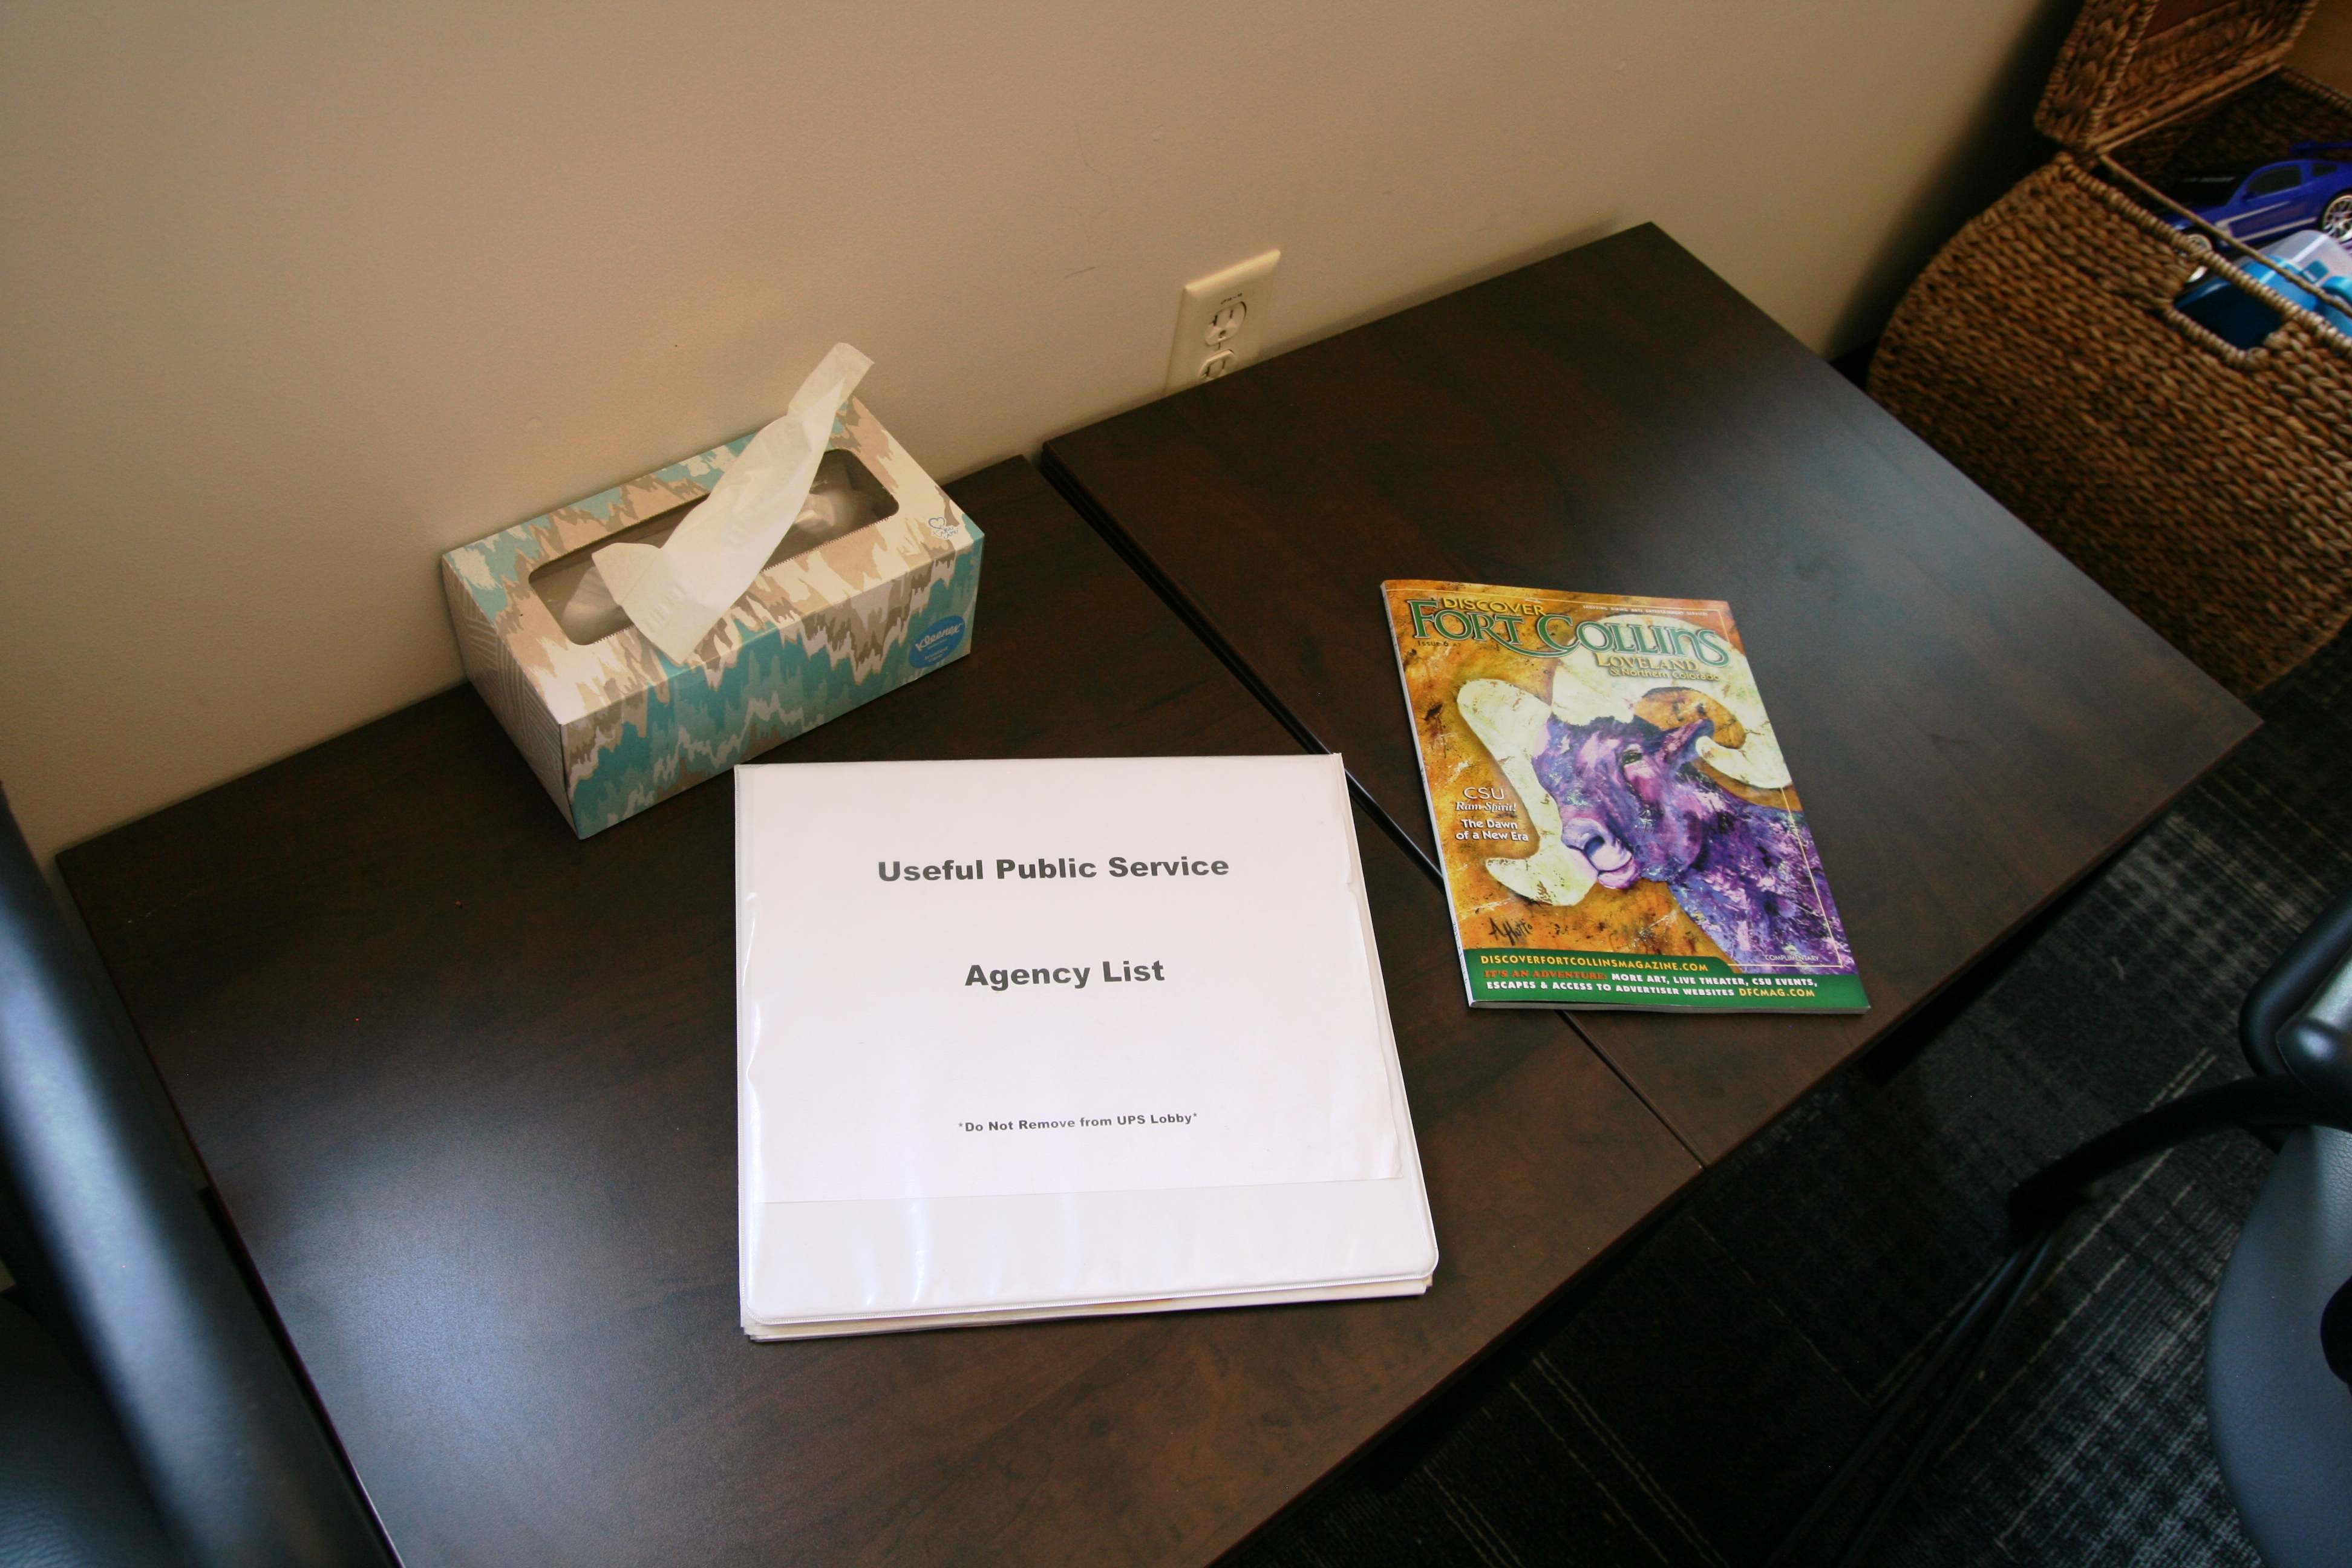 Image 3: Agency List for Community Service